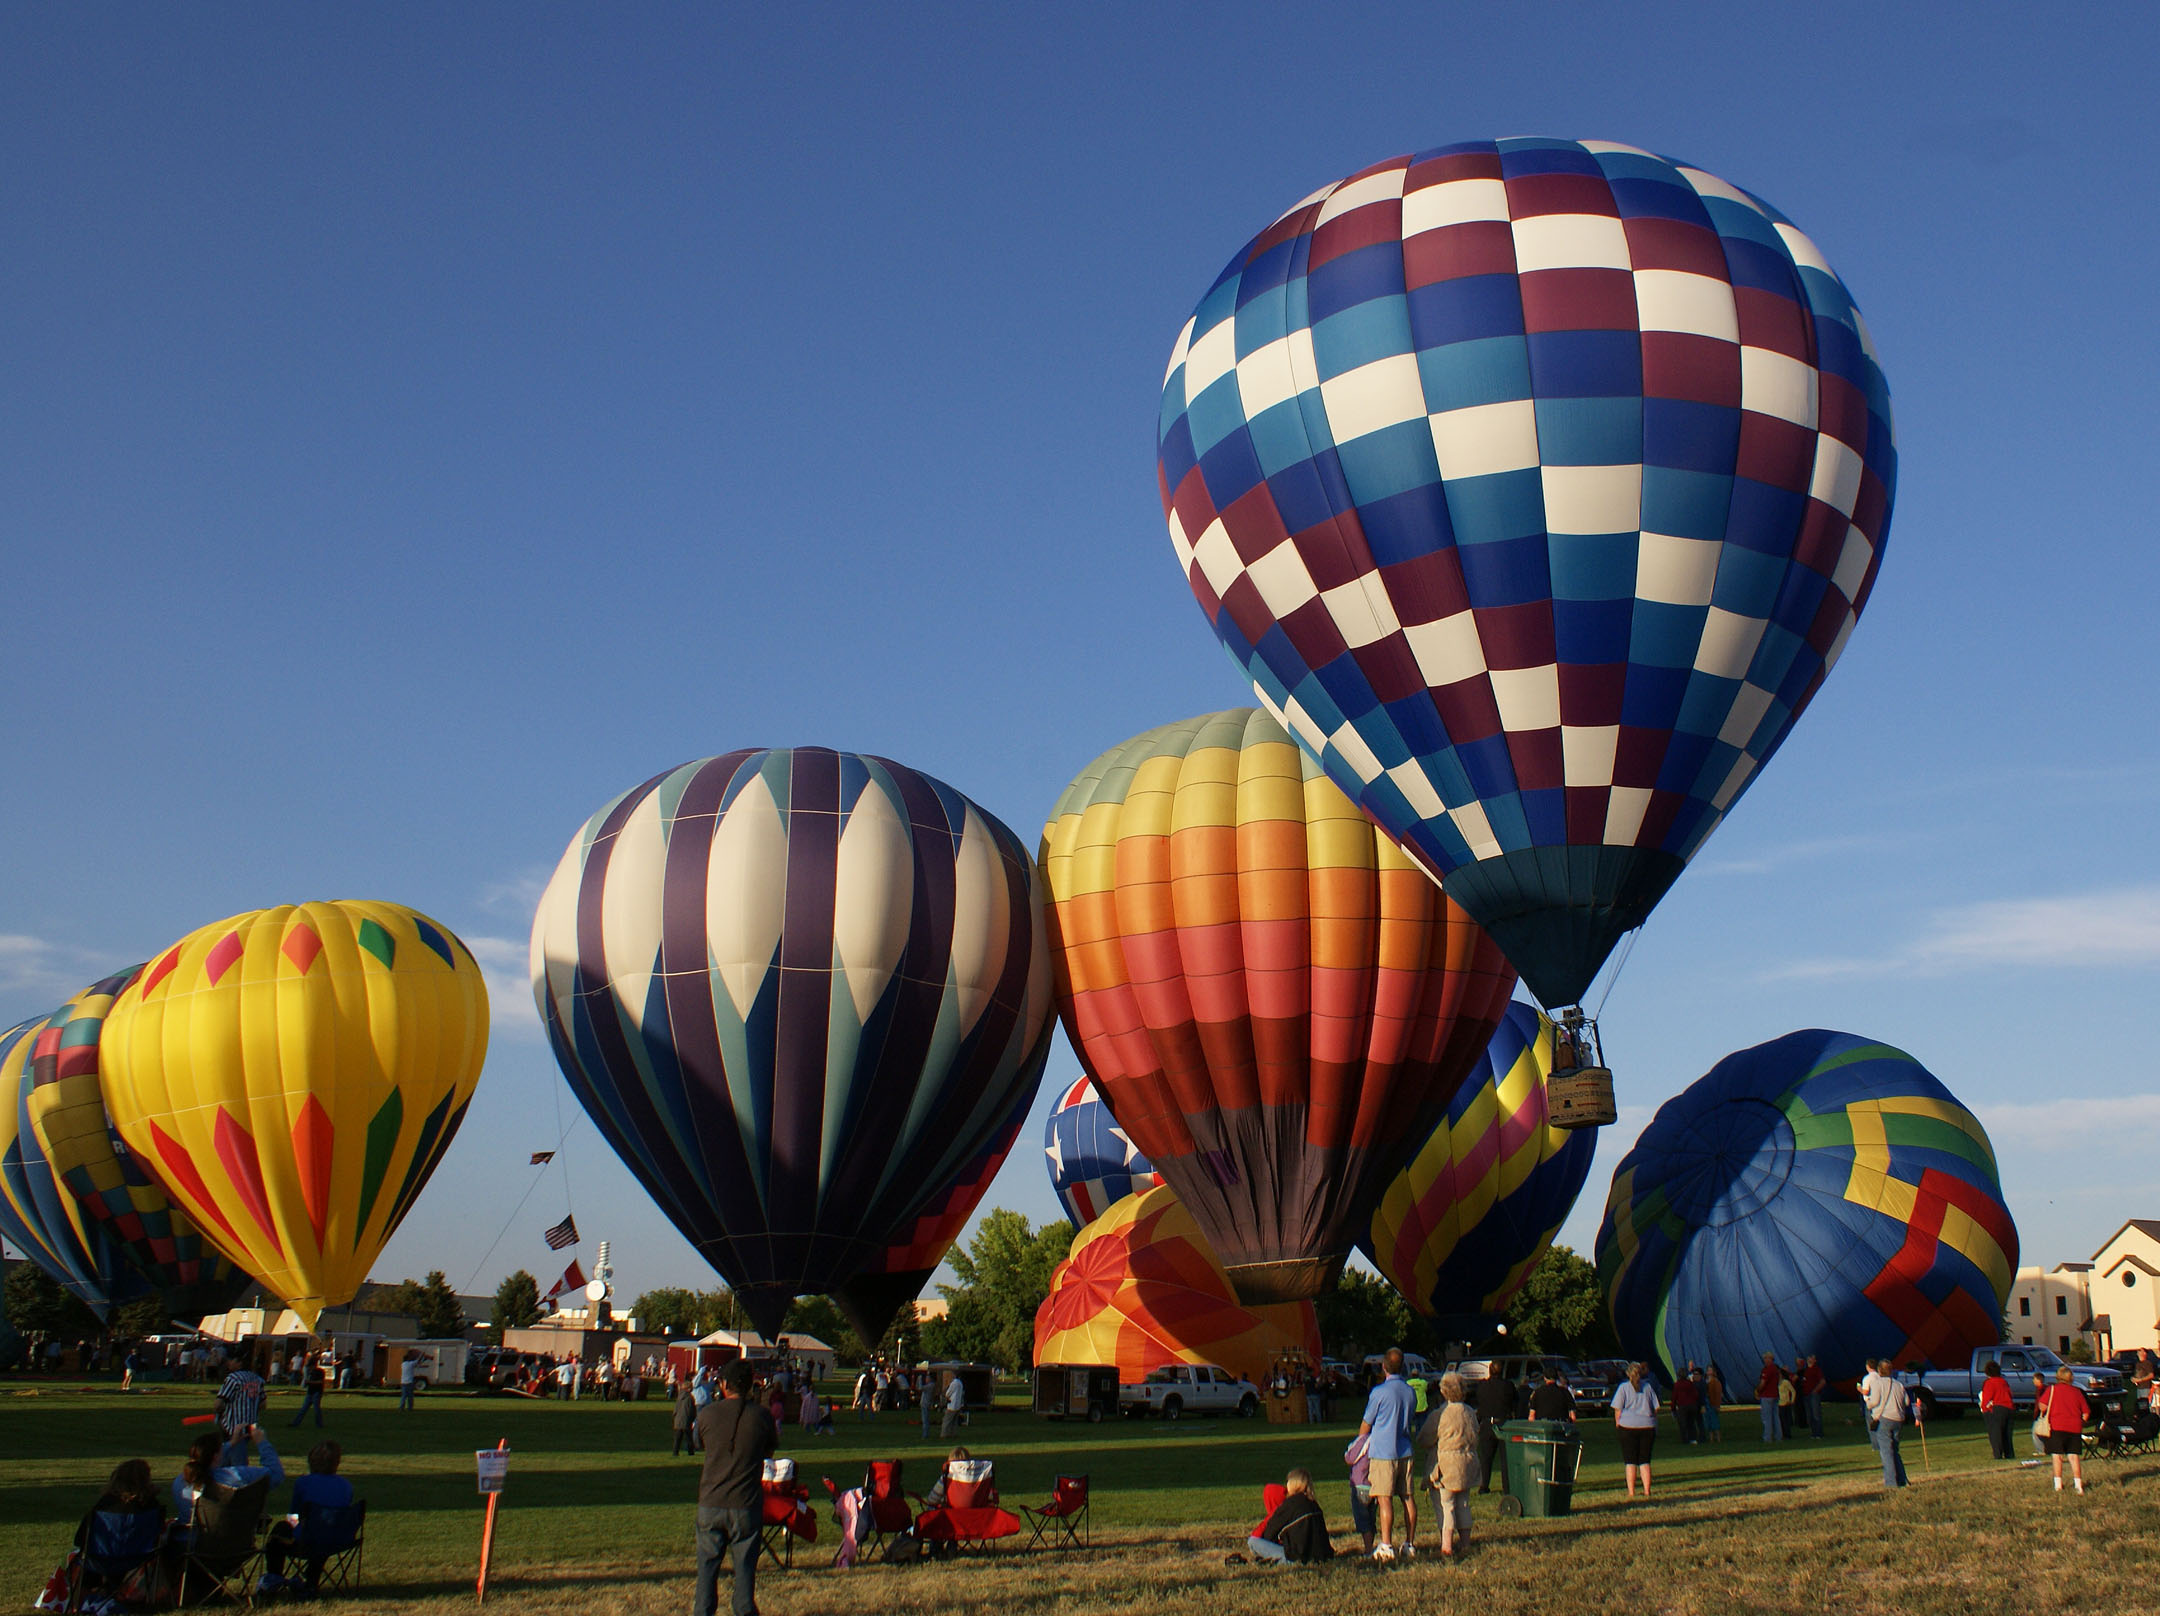 Rendezvous Weekend Includes a Spectacular Hot Air Balloon Rally in Riverton, WY July 20-22.